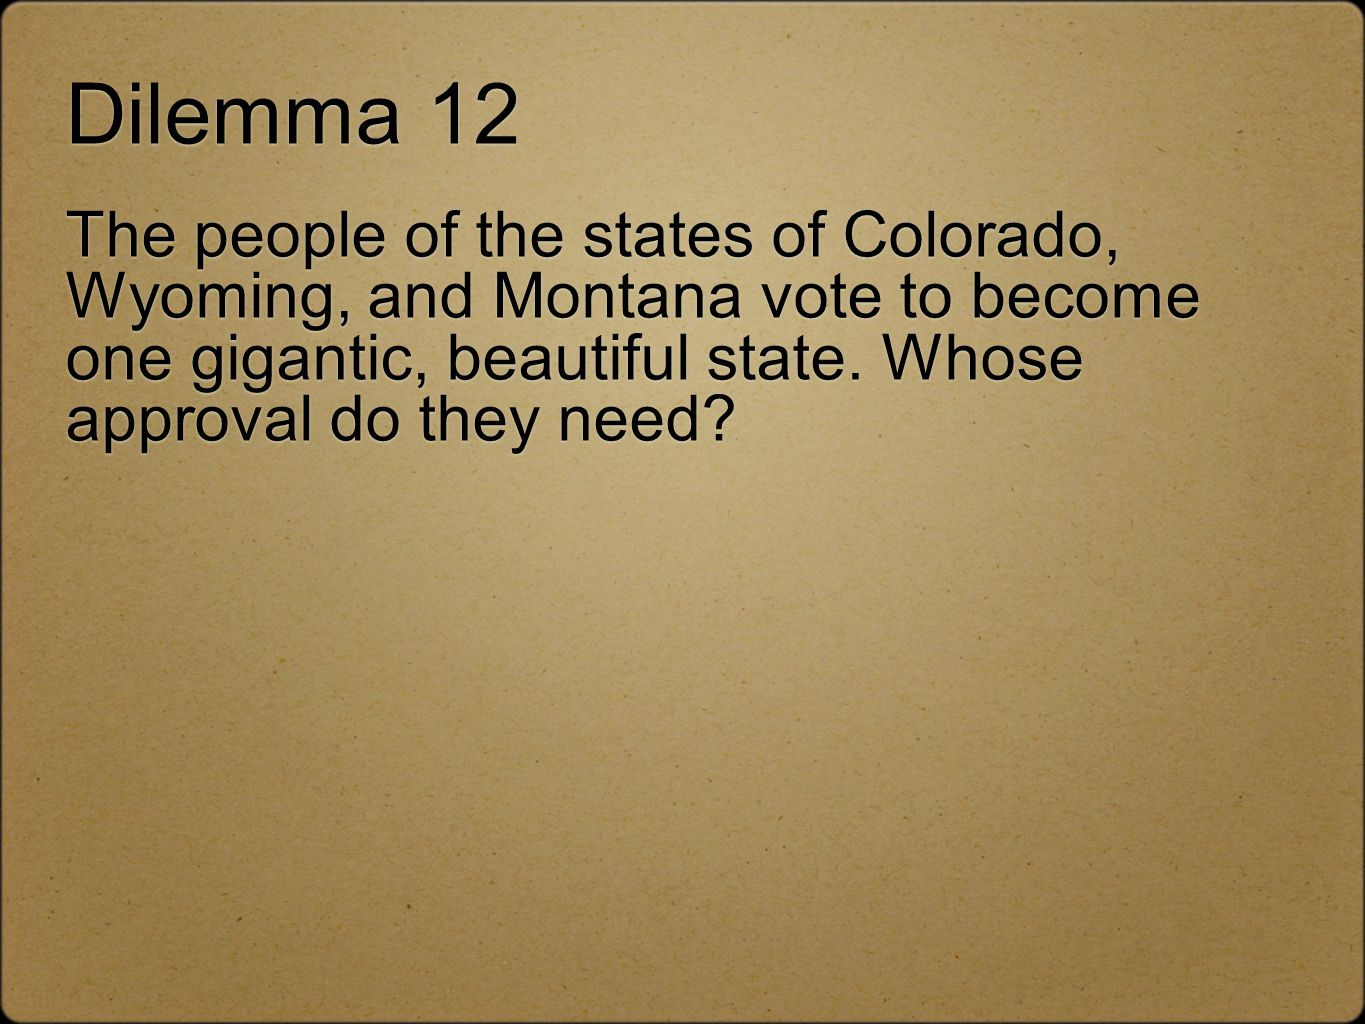 Dilemma 12 The people of the states of Colorado, Wyoming, and Montana vote to become one gigantic, beautiful state.